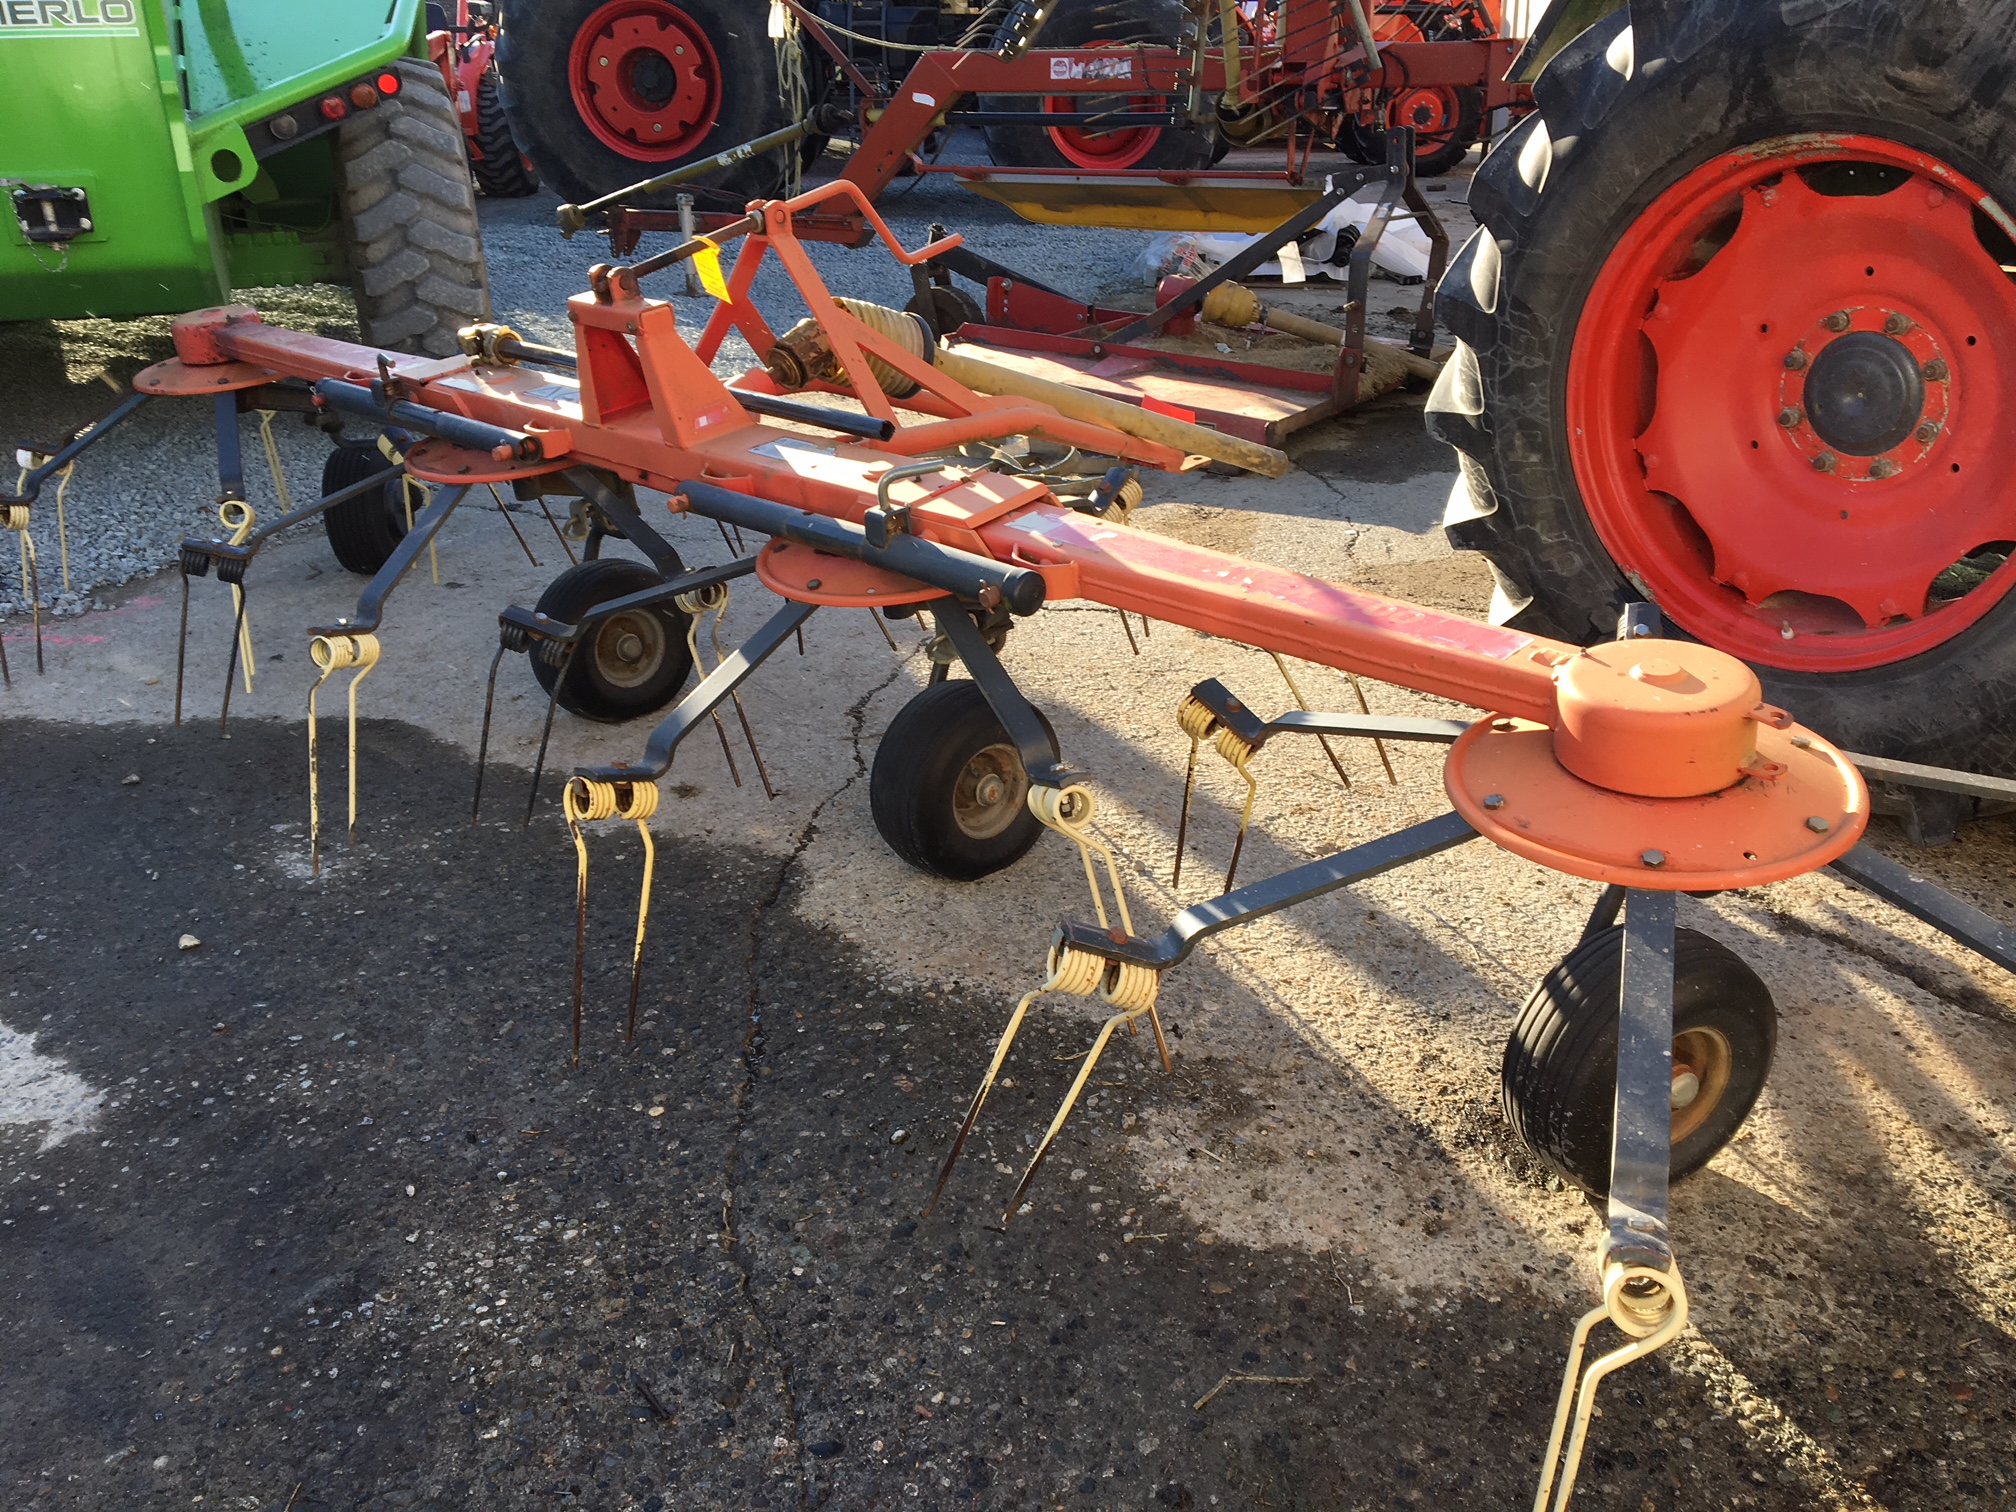 Vicon 500 Tedder for sale in Abbotsford, BC | IronSearch